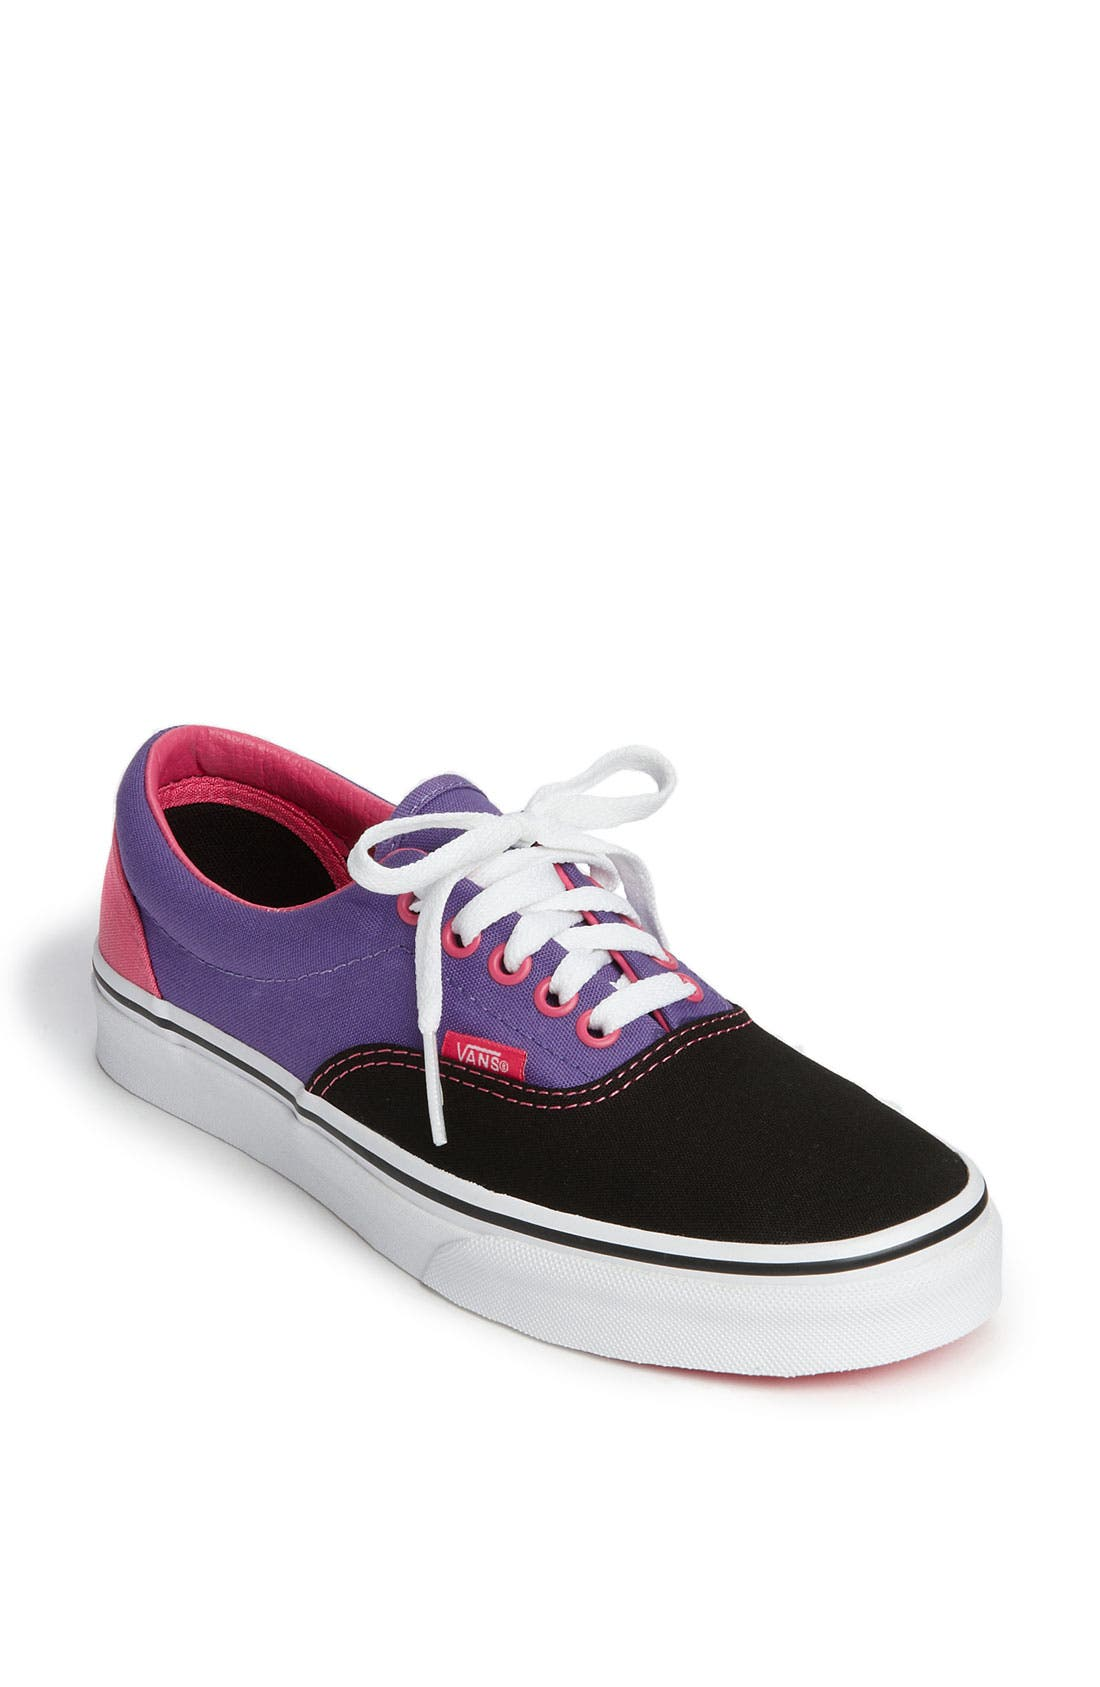 Alternate Image 1 Selected - Vans 'Era Tri Tone' Sneaker (Women)